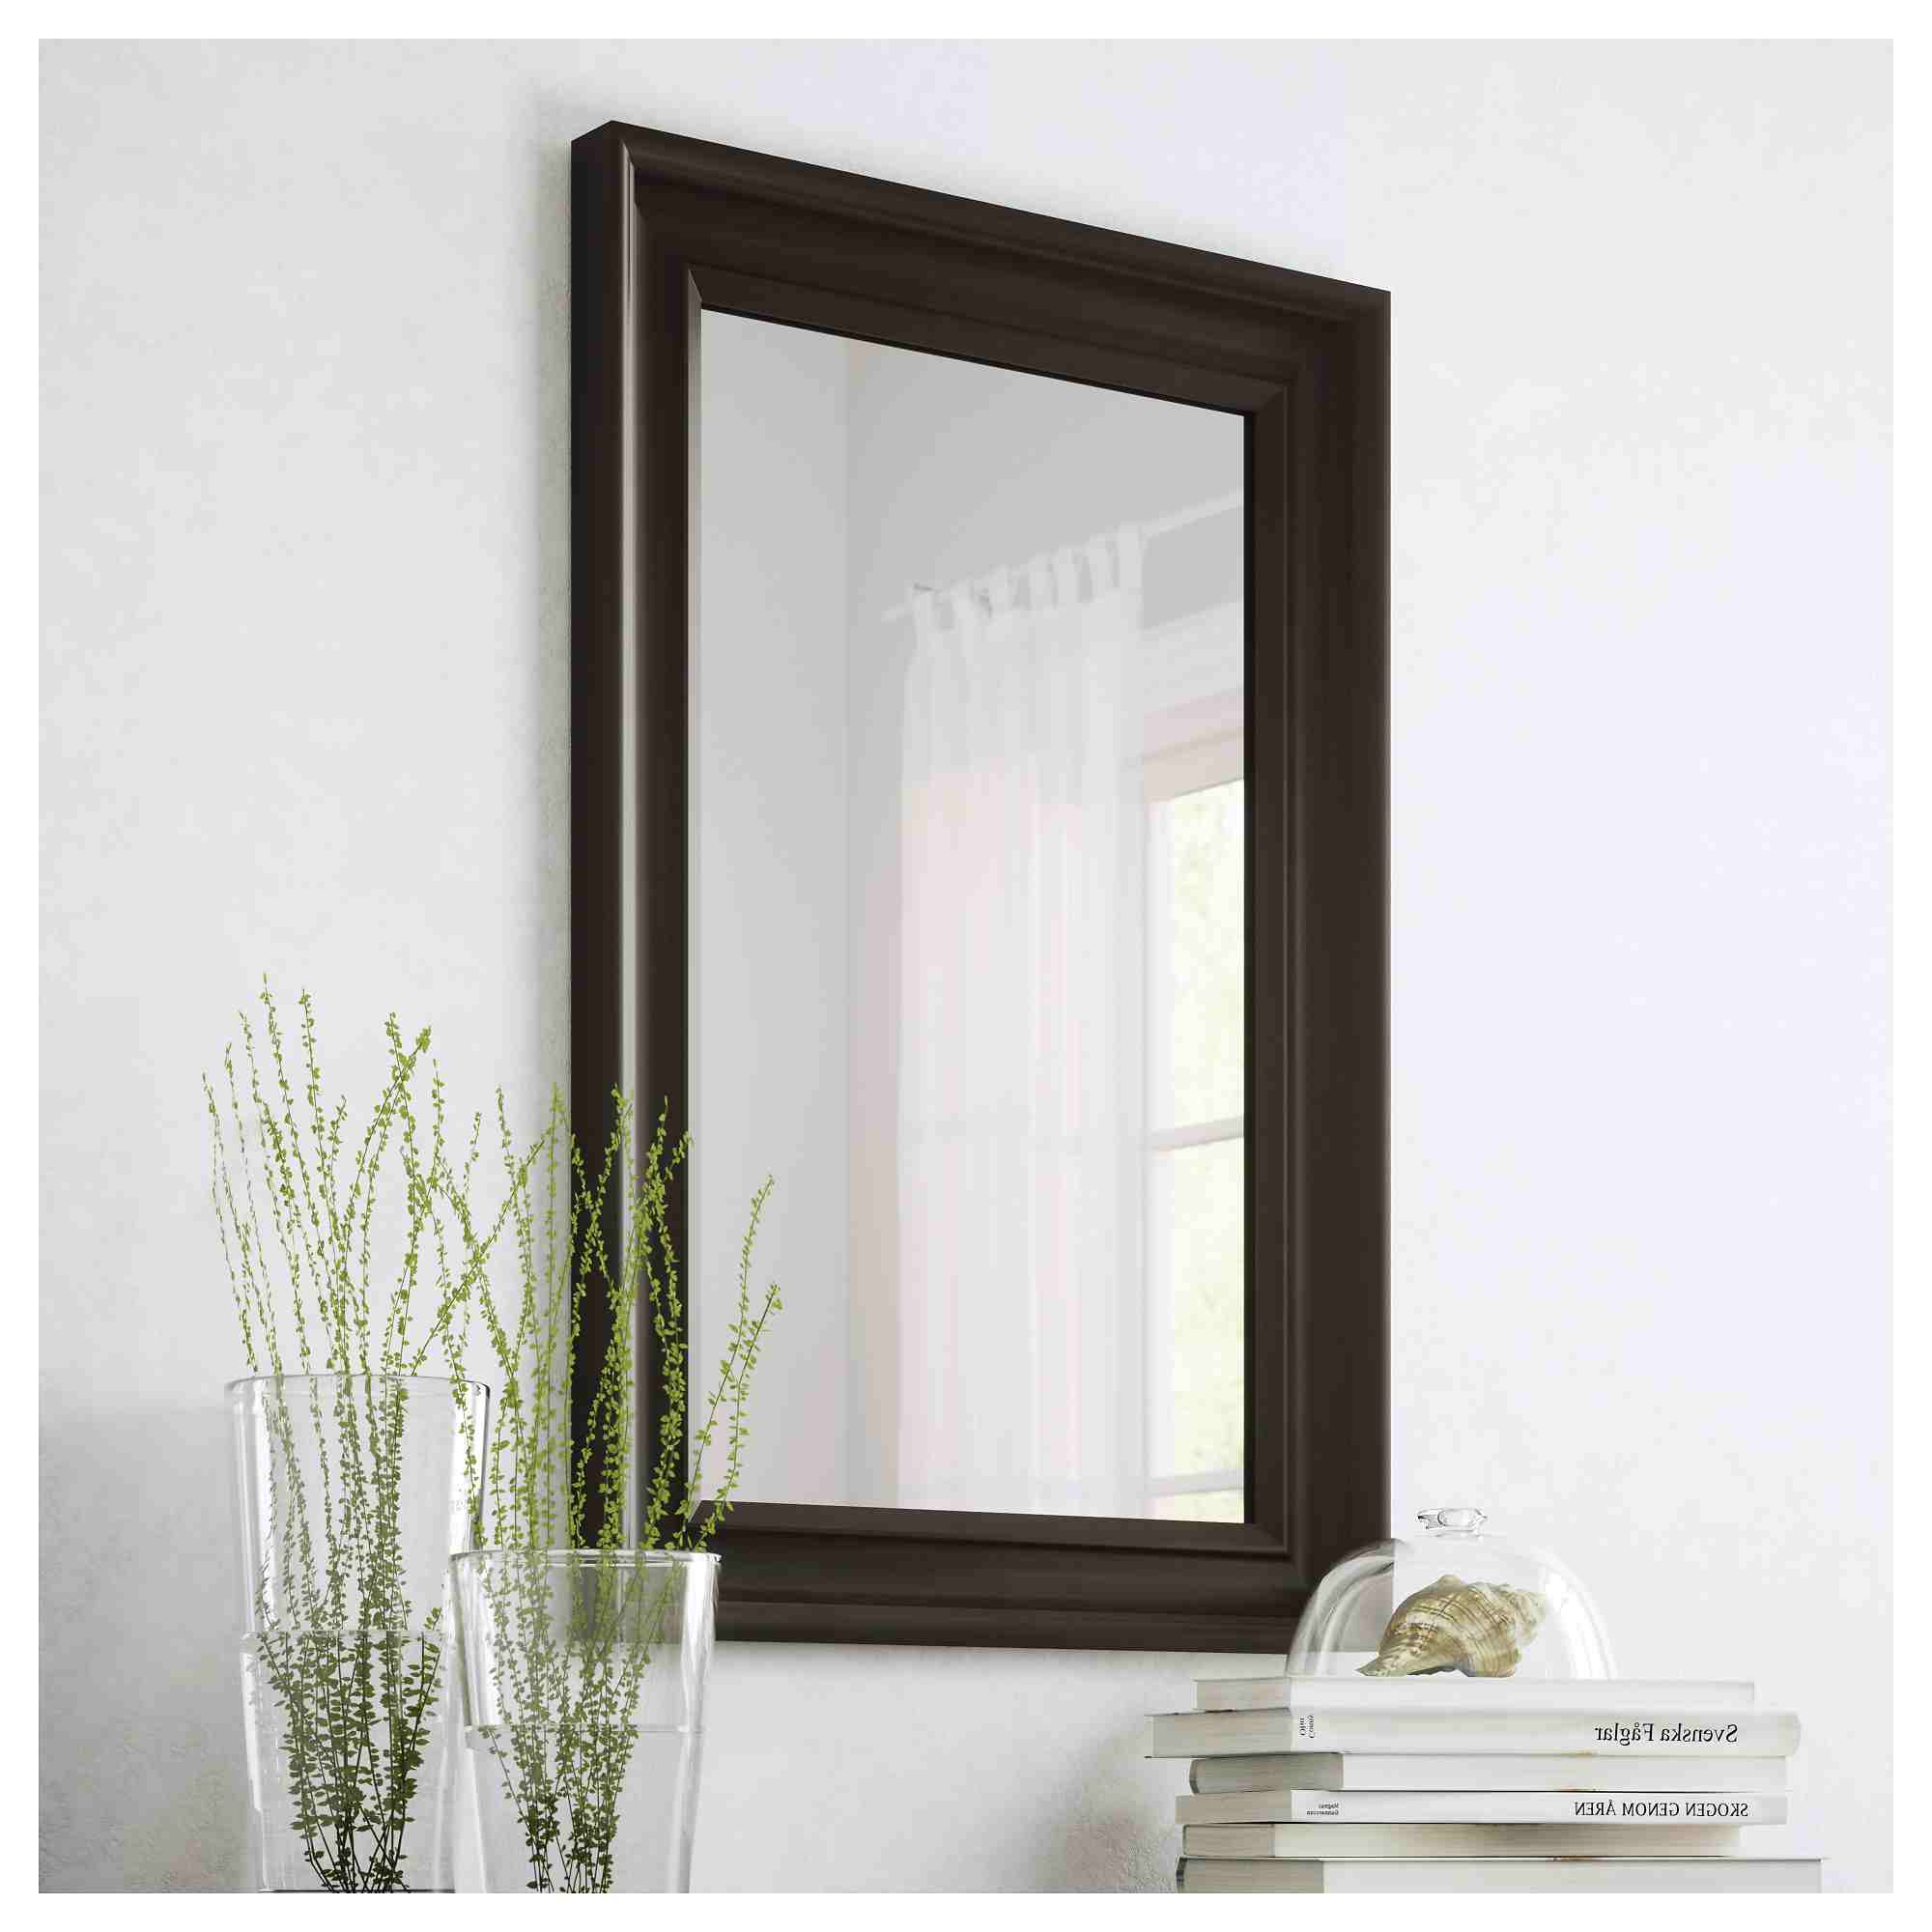 Big Wall Mirrors From Ikea Regarding Well Known Large Wall Mirror For Elegant Decor – Anews (View 20 of 20)